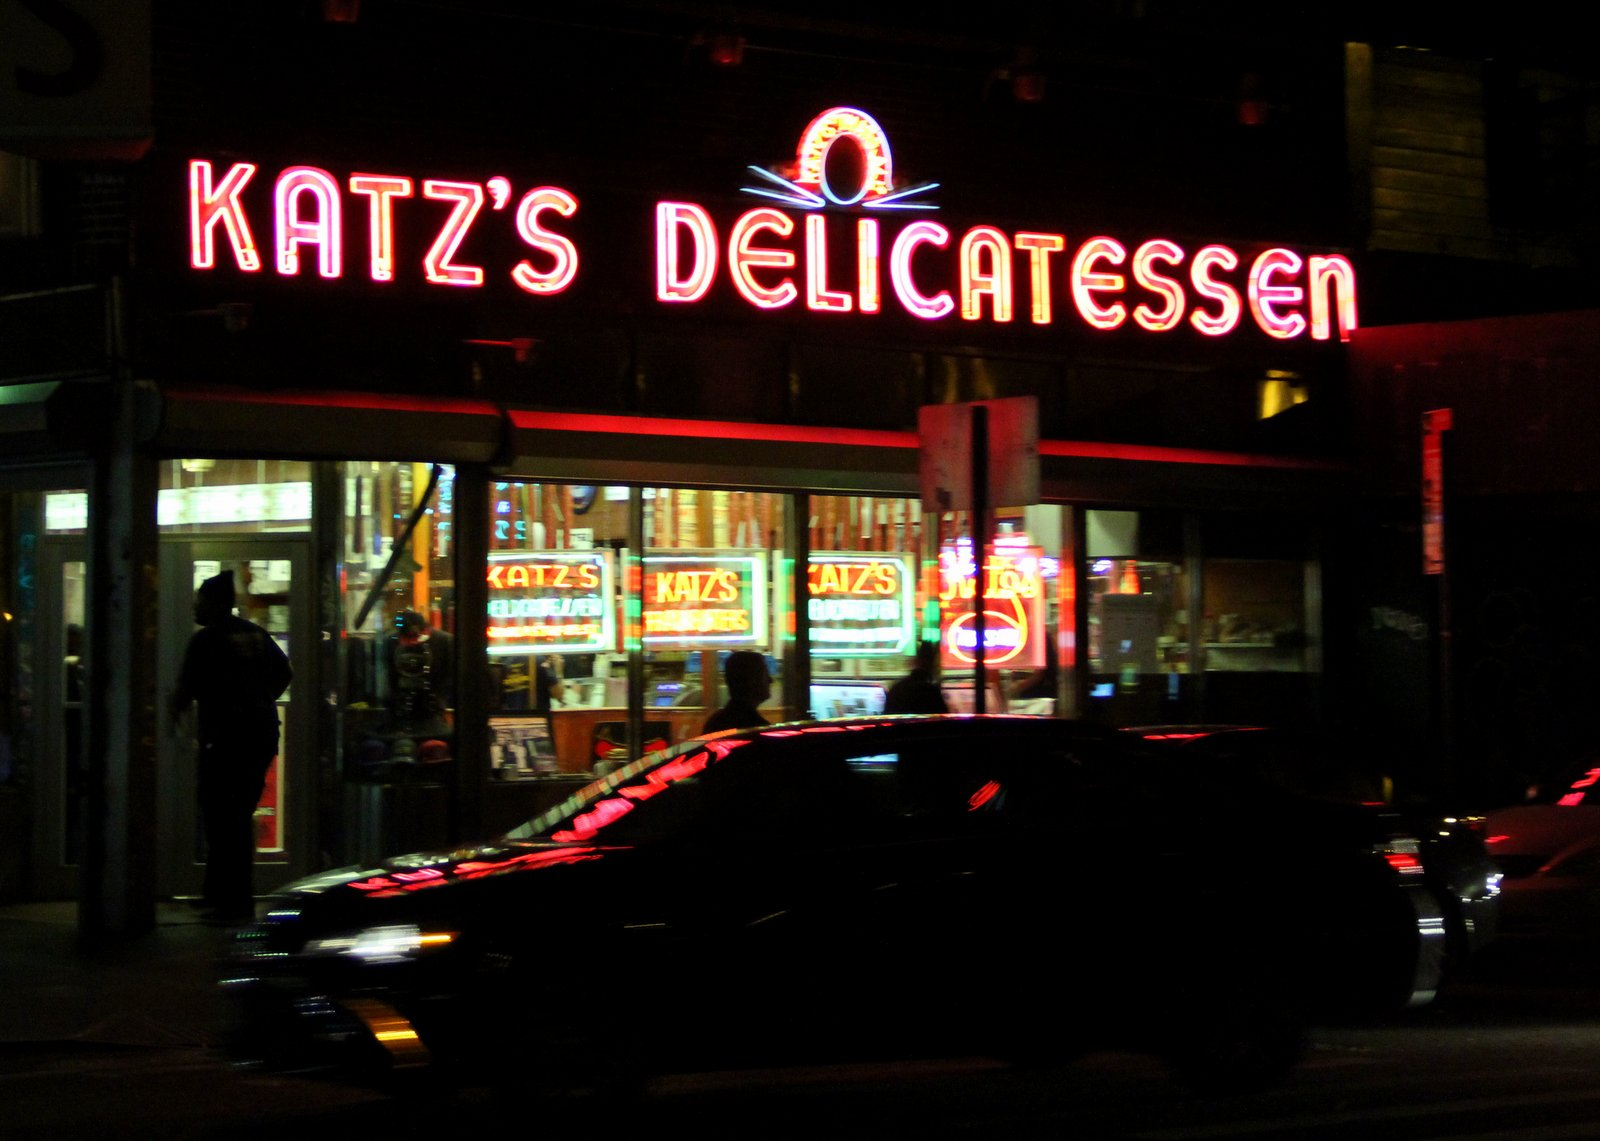 KATZS_DELICATESSEN_PASTRAMI_NEW_YORK_PHOTO_3470